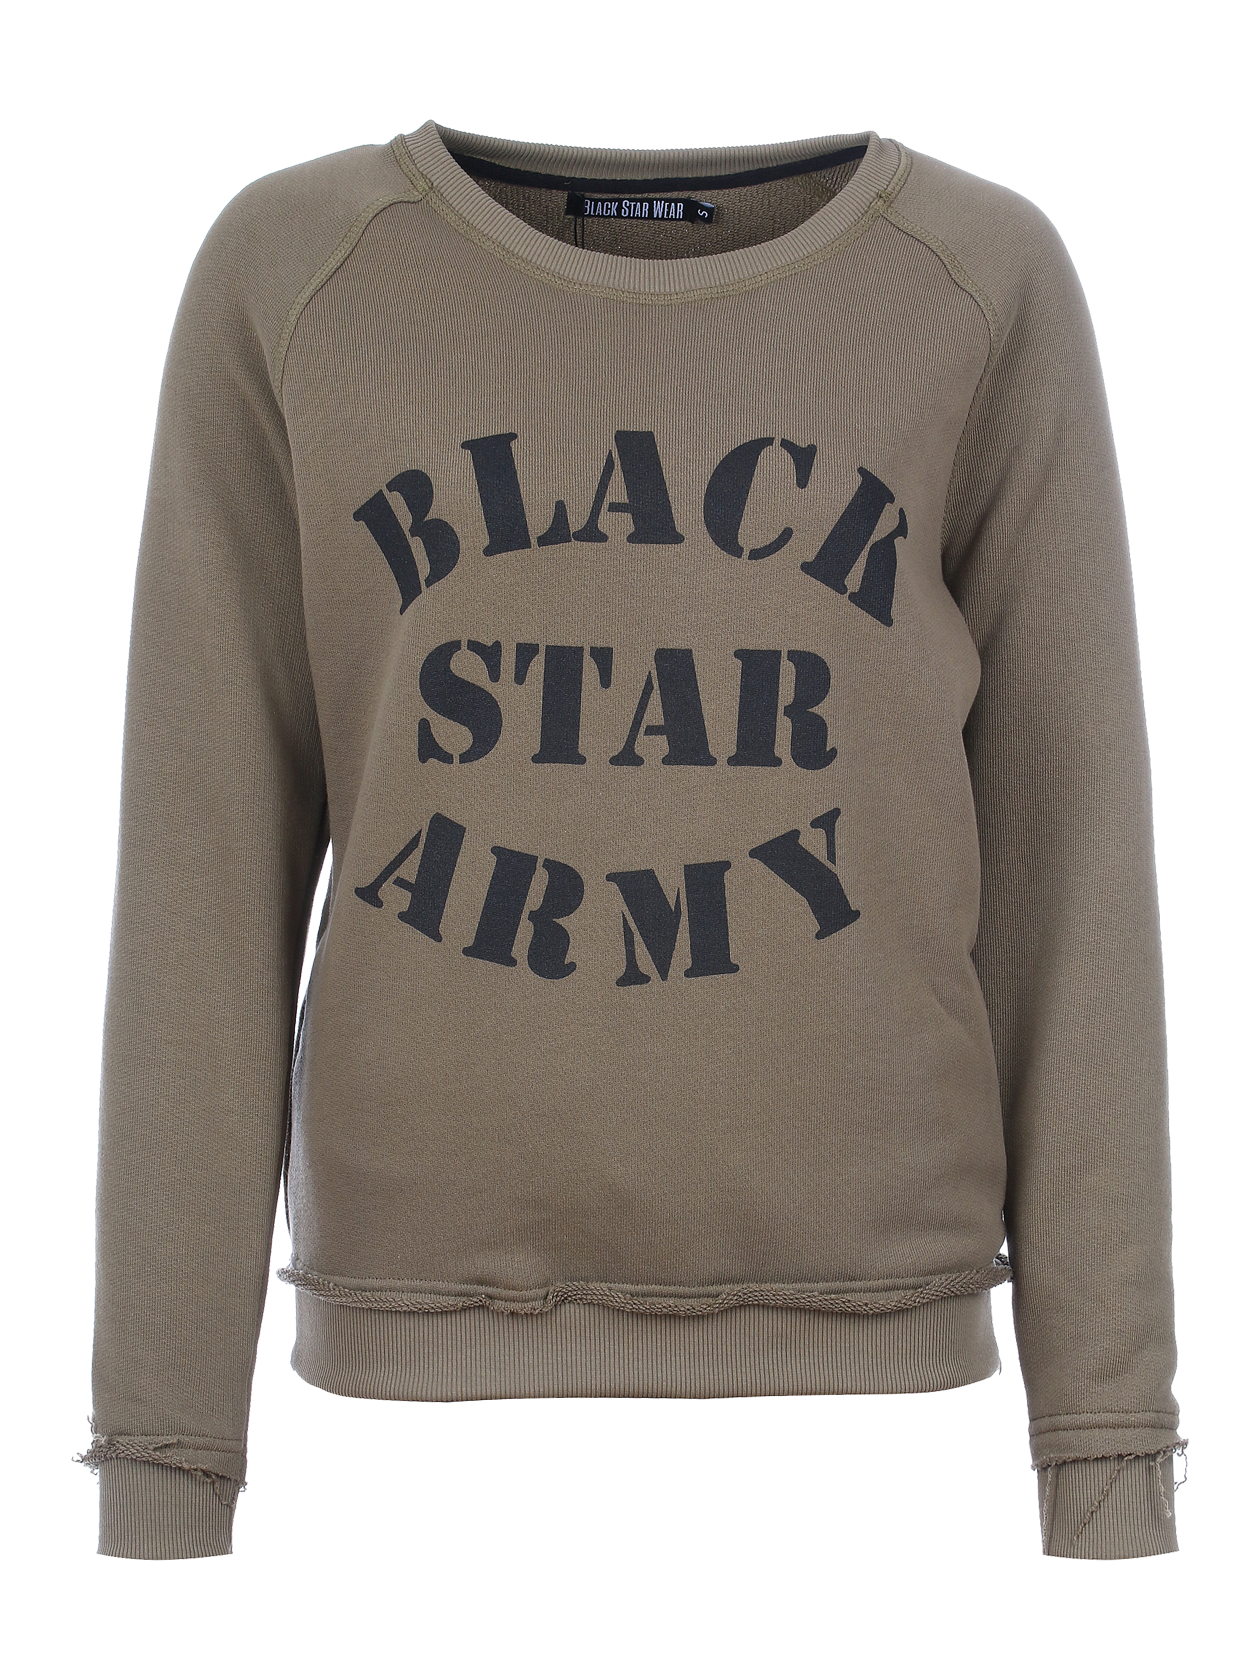 Womens sportsuit Black Star ArmyWomens sweatshirt and sweatpants set by Black Star Wear. Sweatshirt with o-neck, cuffs, big print Black Star Army. Sweatpants with side pockets and and Black Star Army print on the right side. Regular fit, natural cotton. Avaliable in khaki. Military style with raw cut elements.<br><br>size: M<br>color: Khaki<br>gender: female